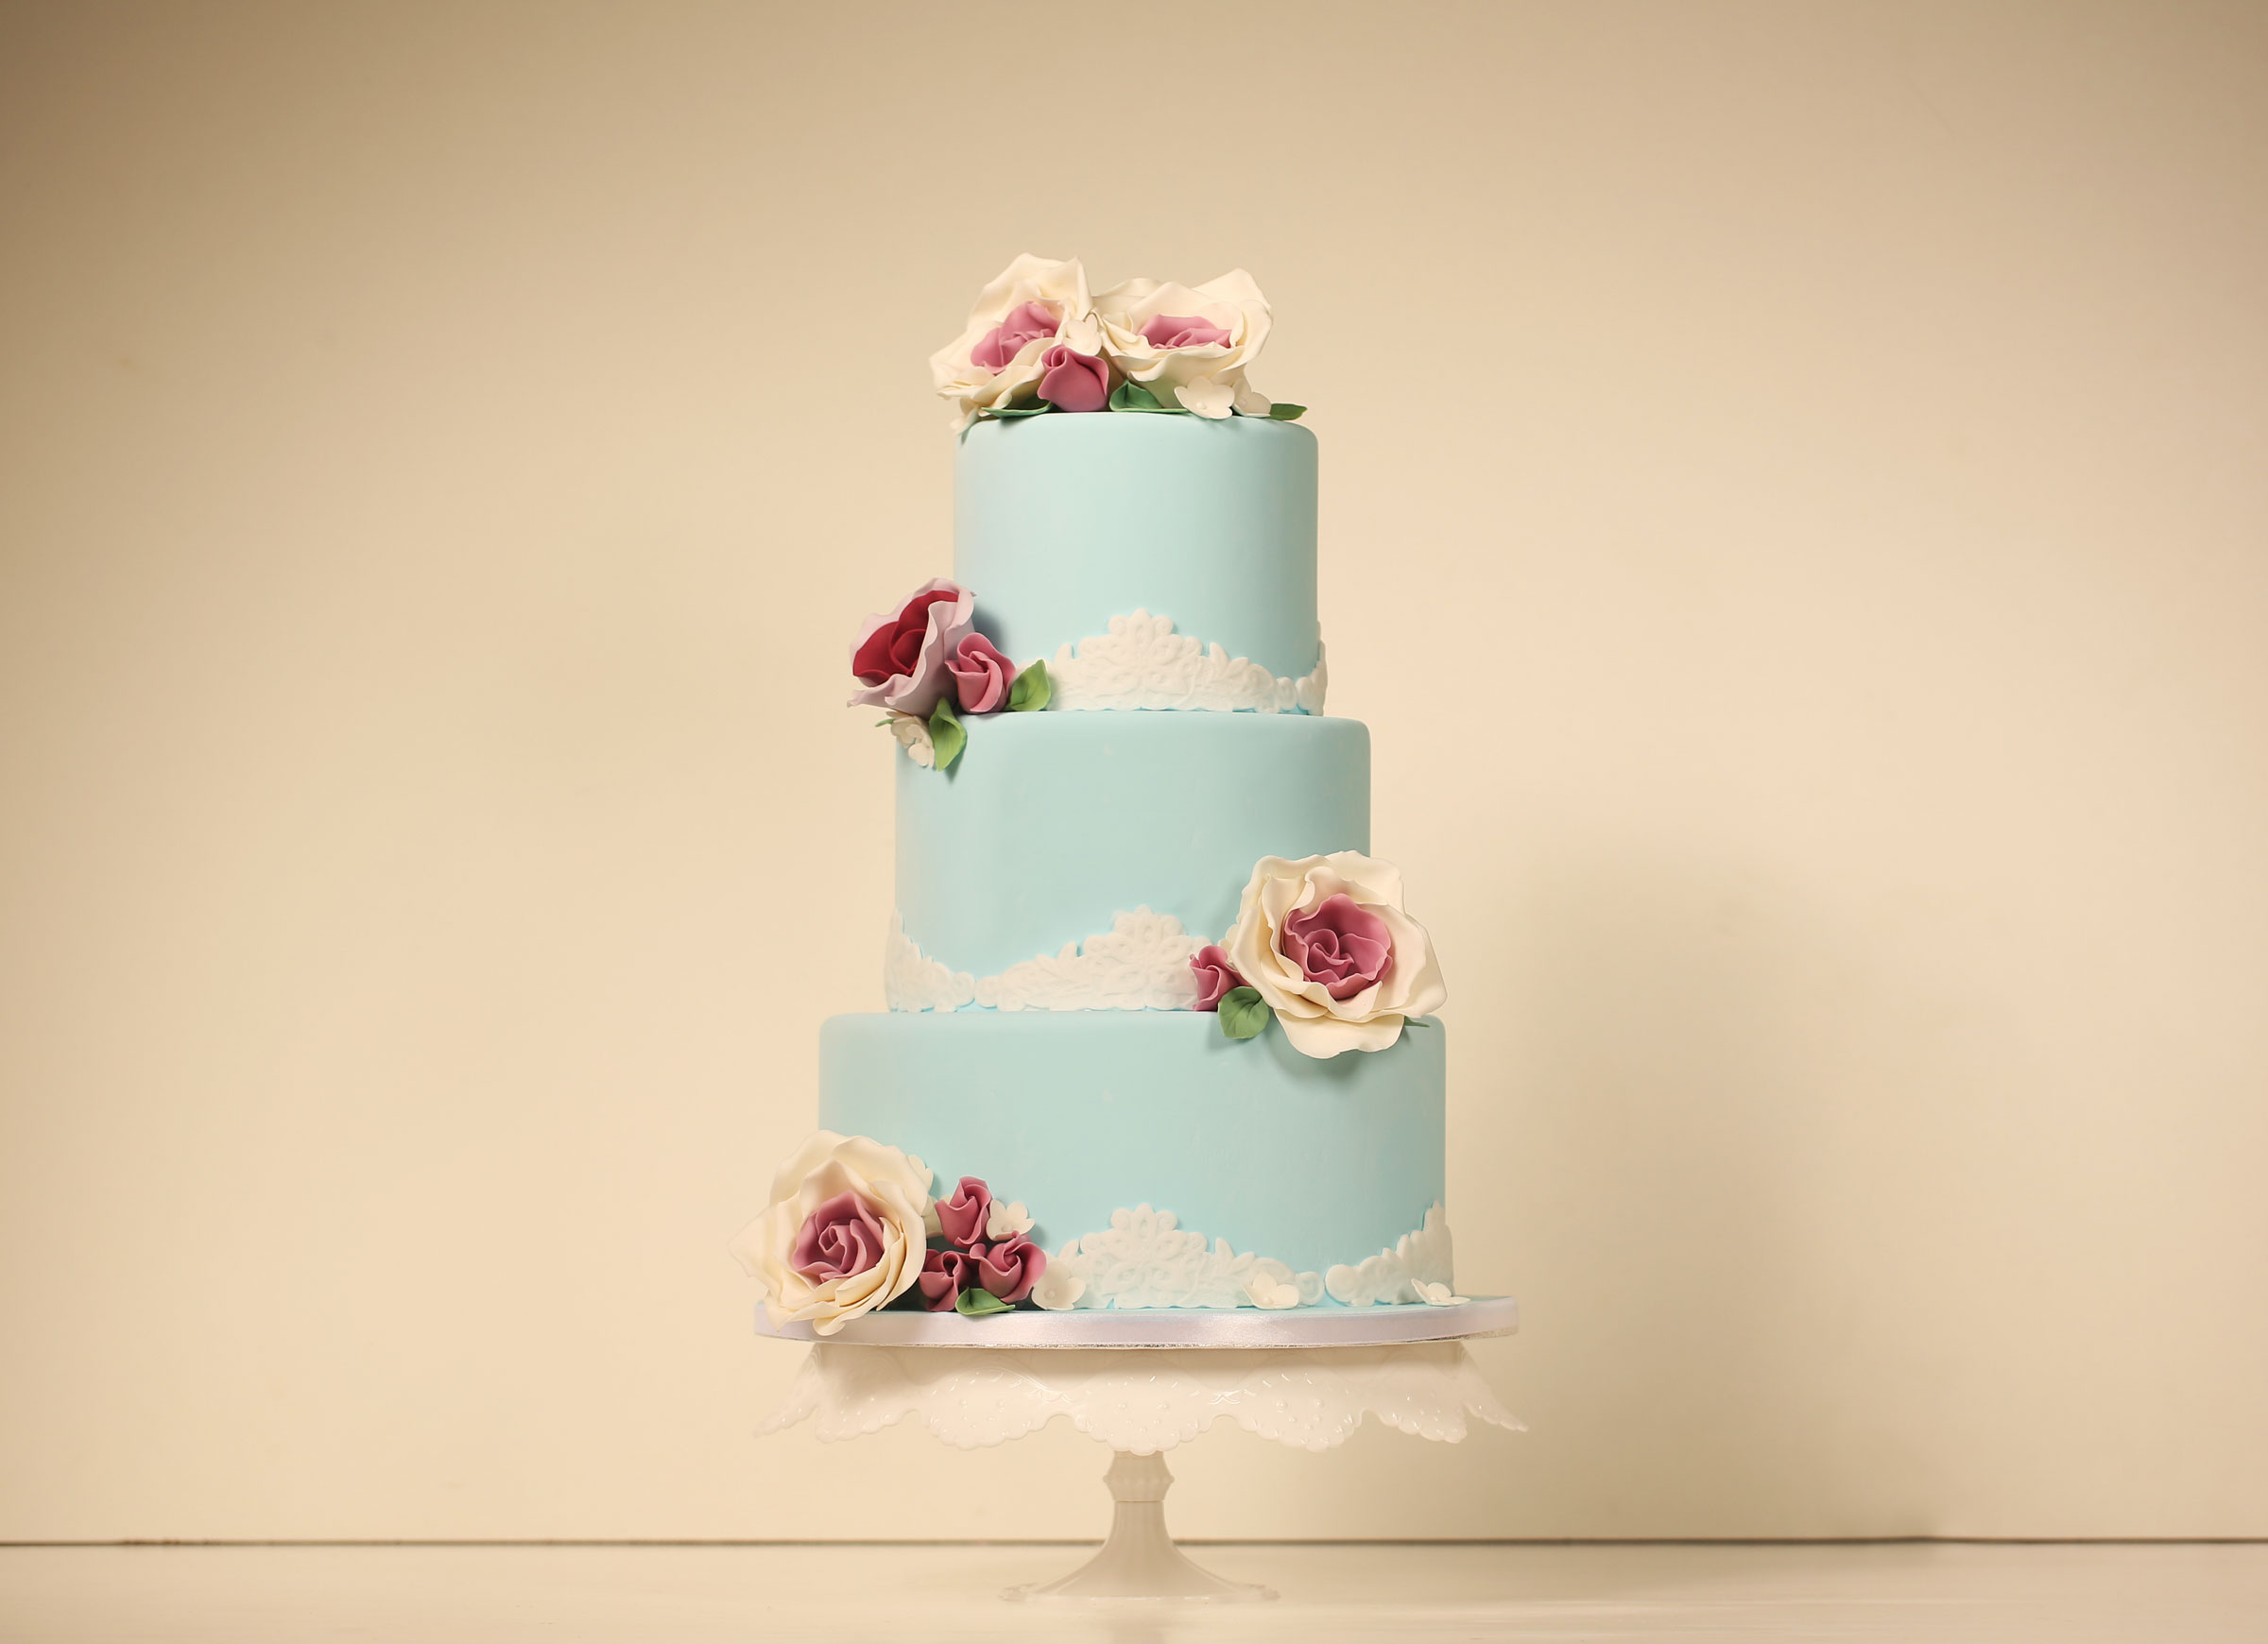 10 Questions to Ask Before Hiring Your Wedding Cake Designer - Toledo Wedding Guide